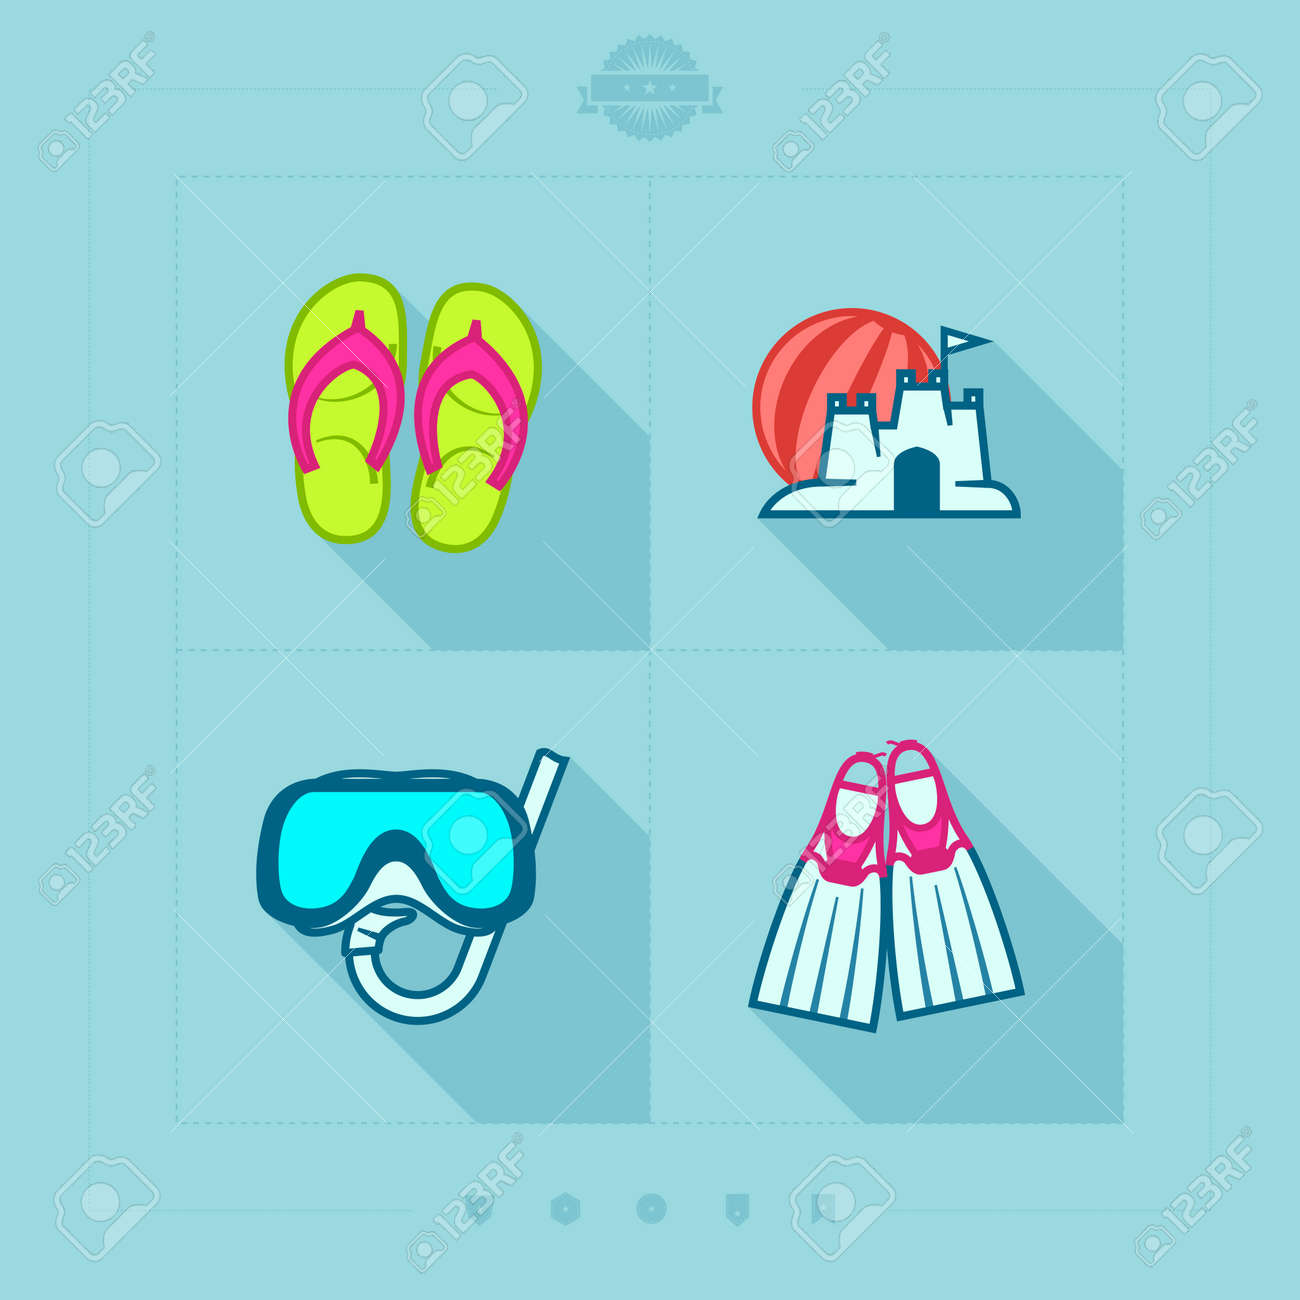 4 icons in relations to summer vacation time  Flip-flops, Sand castle and beach ball, Diving mask and snorkel, Diving flippers. Stock Vector - 25513376